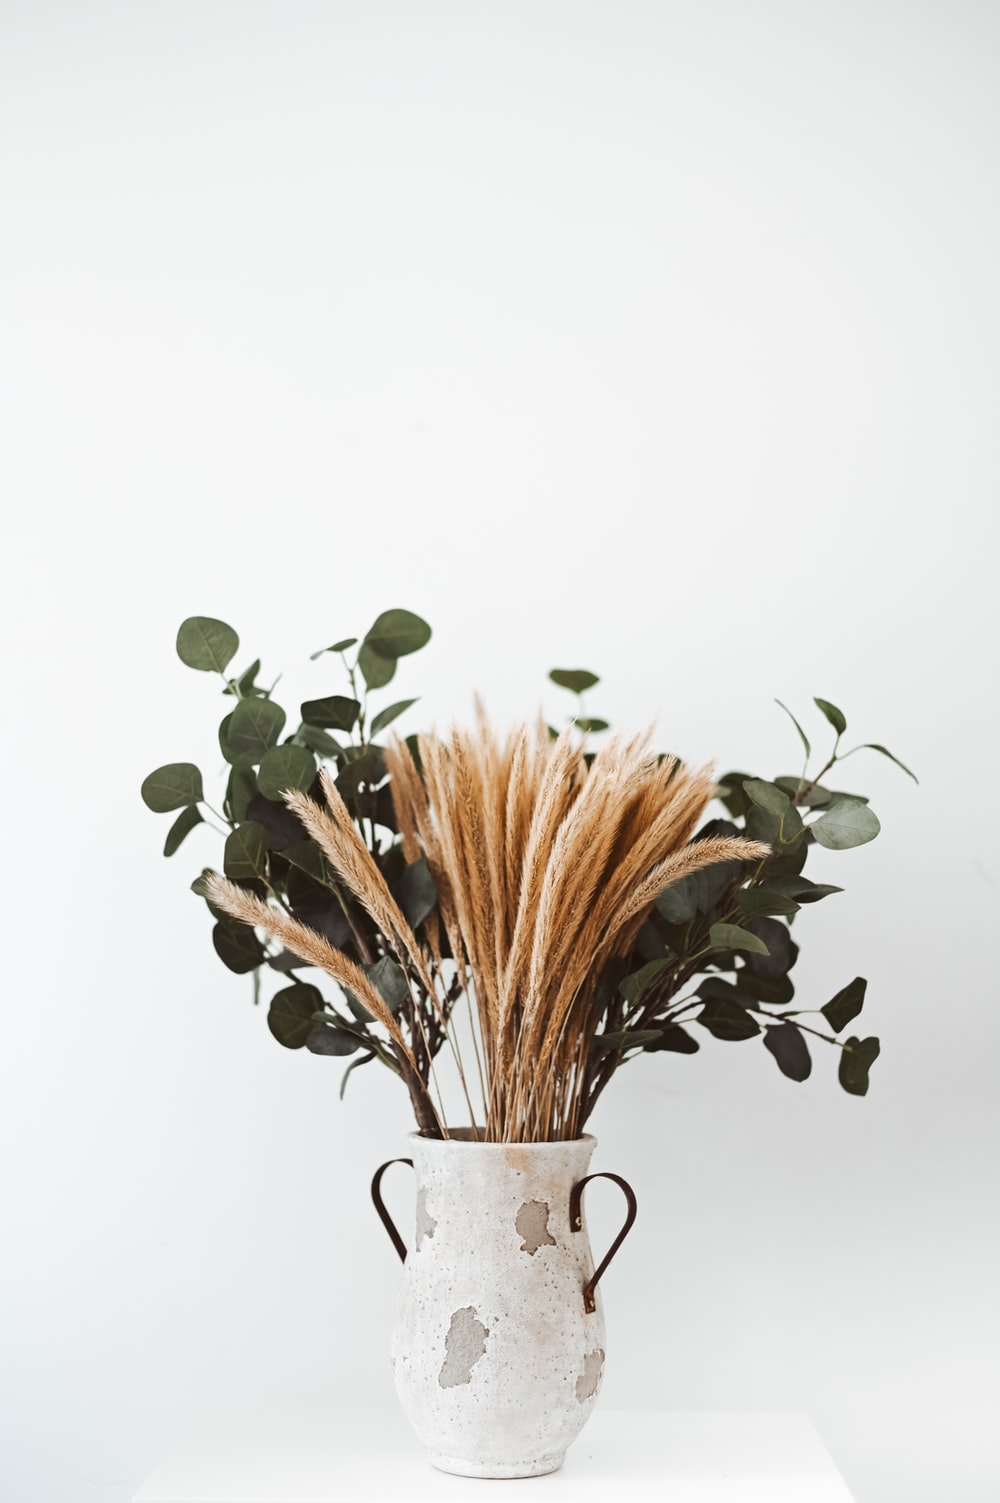 wheat and green leaf plant in vase